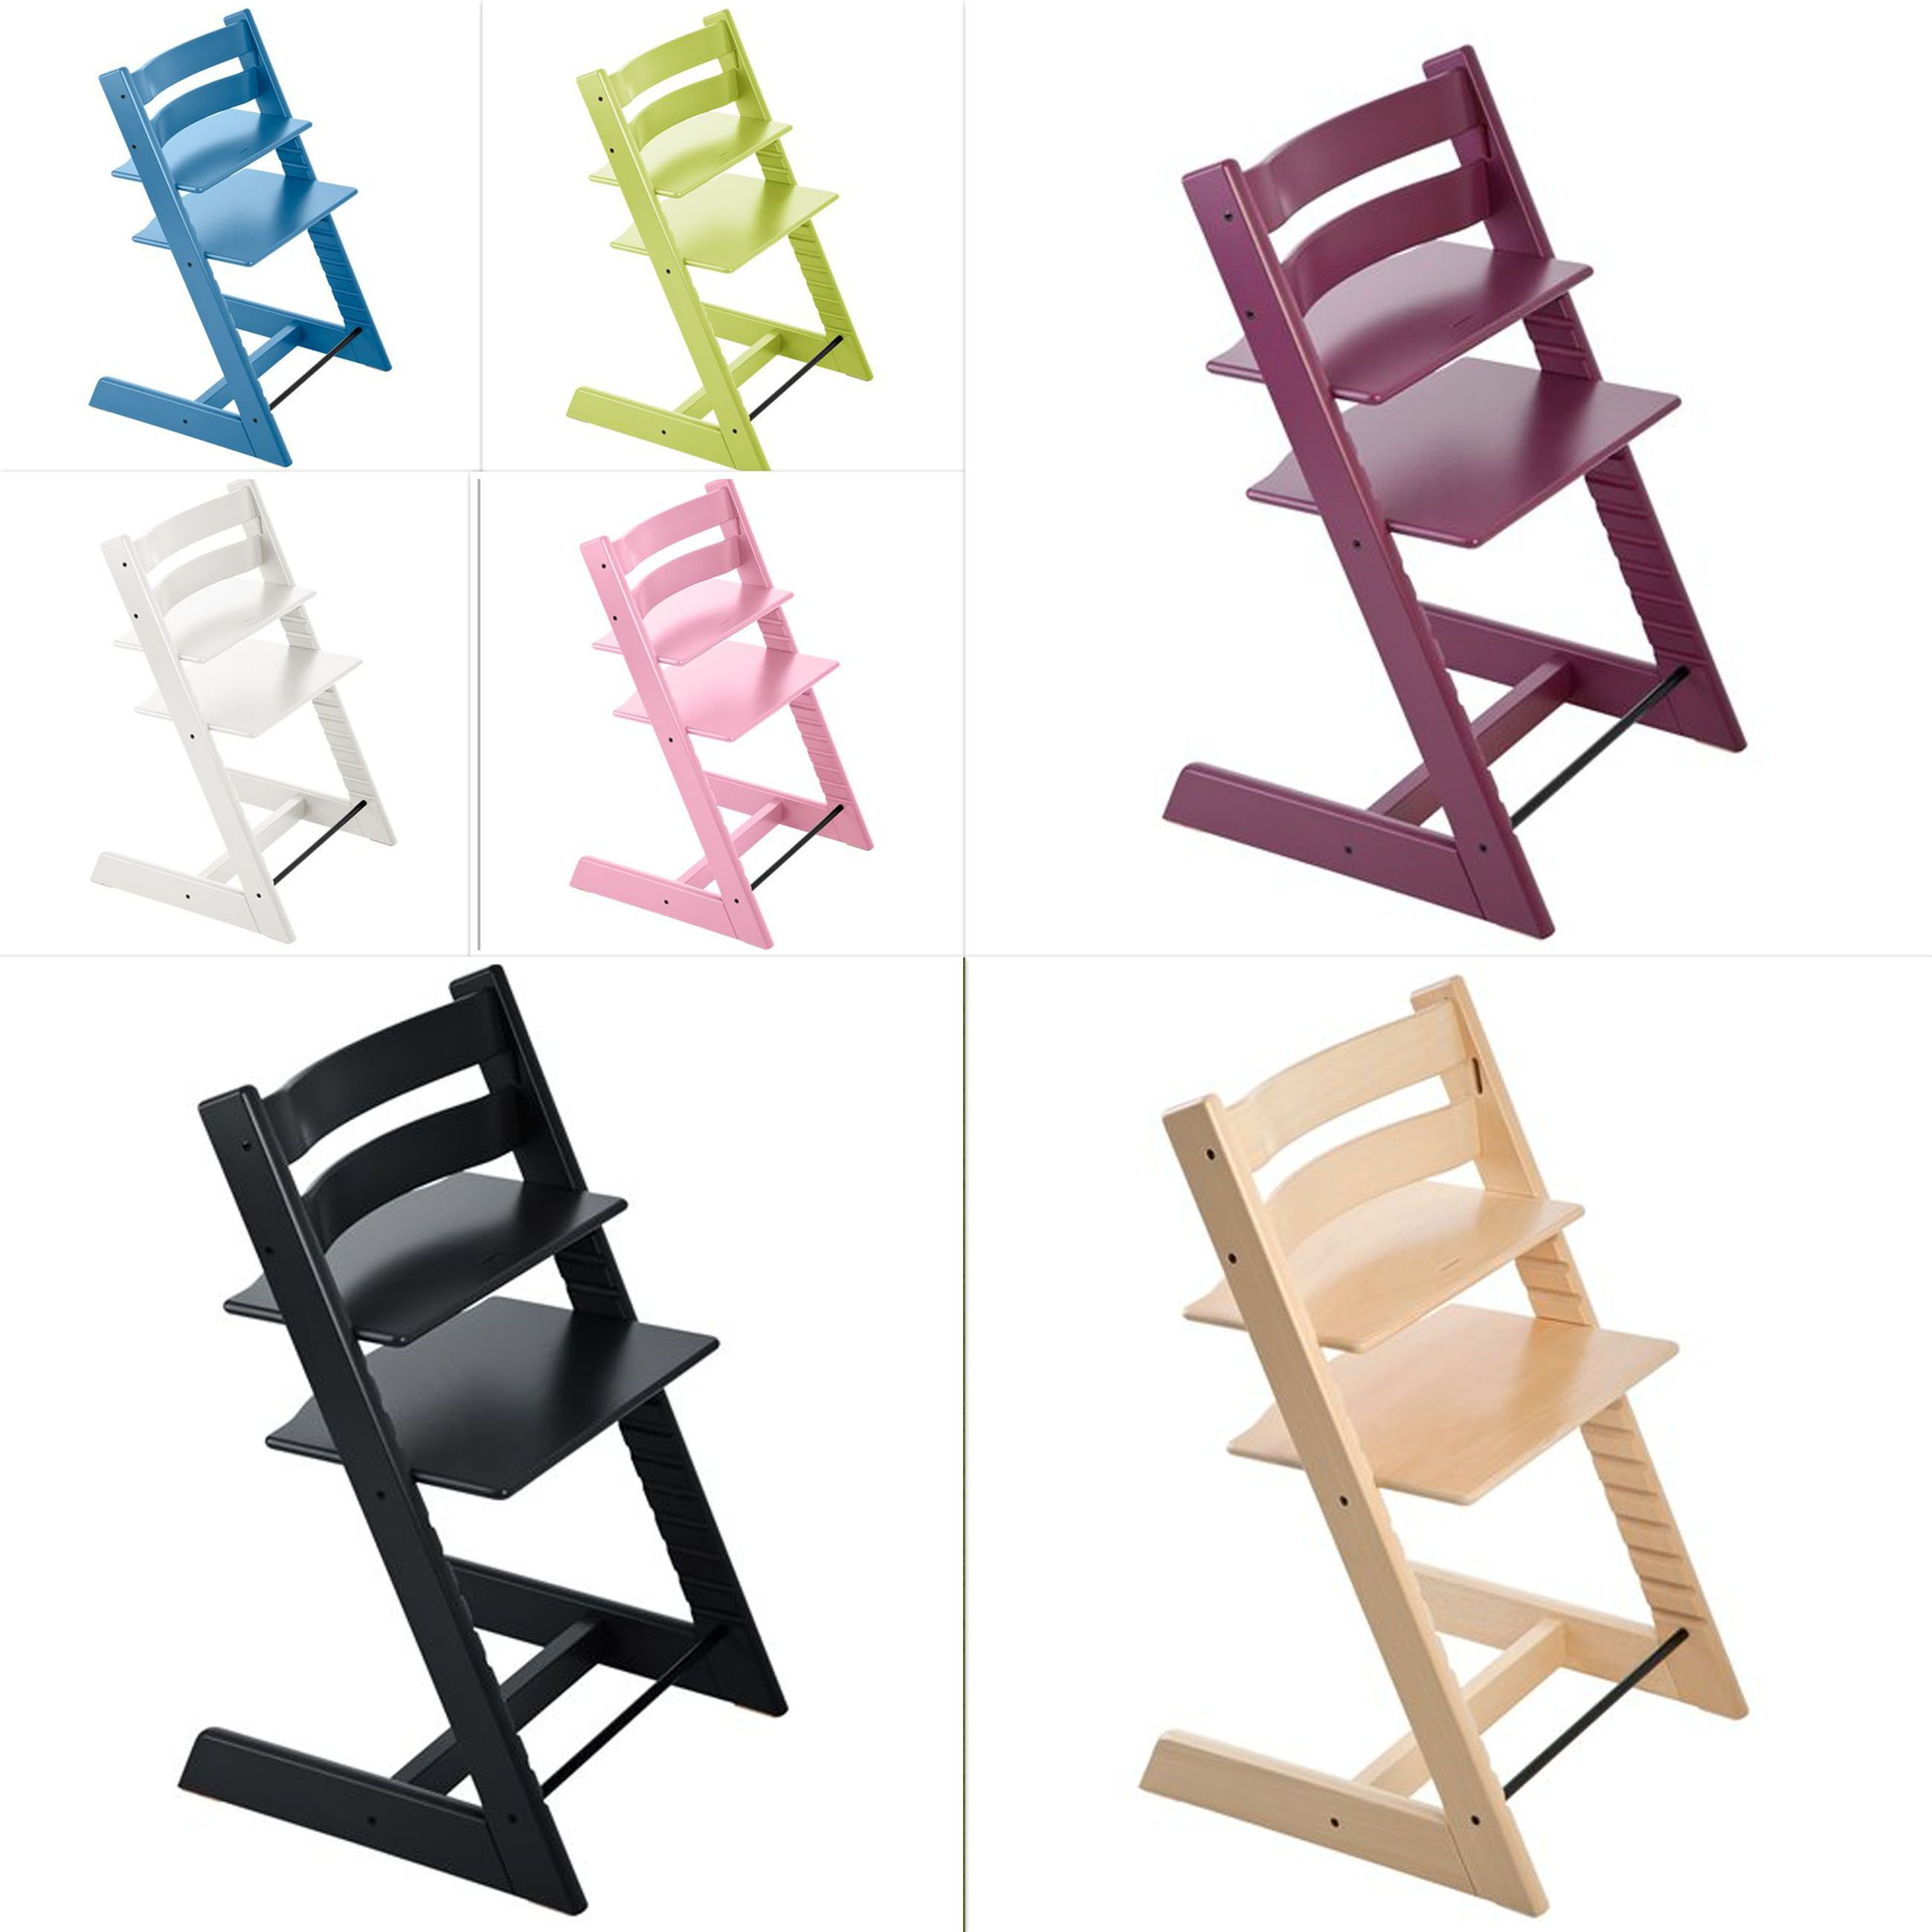 trip trap chair from stokke nicest kids chair for the. Black Bedroom Furniture Sets. Home Design Ideas